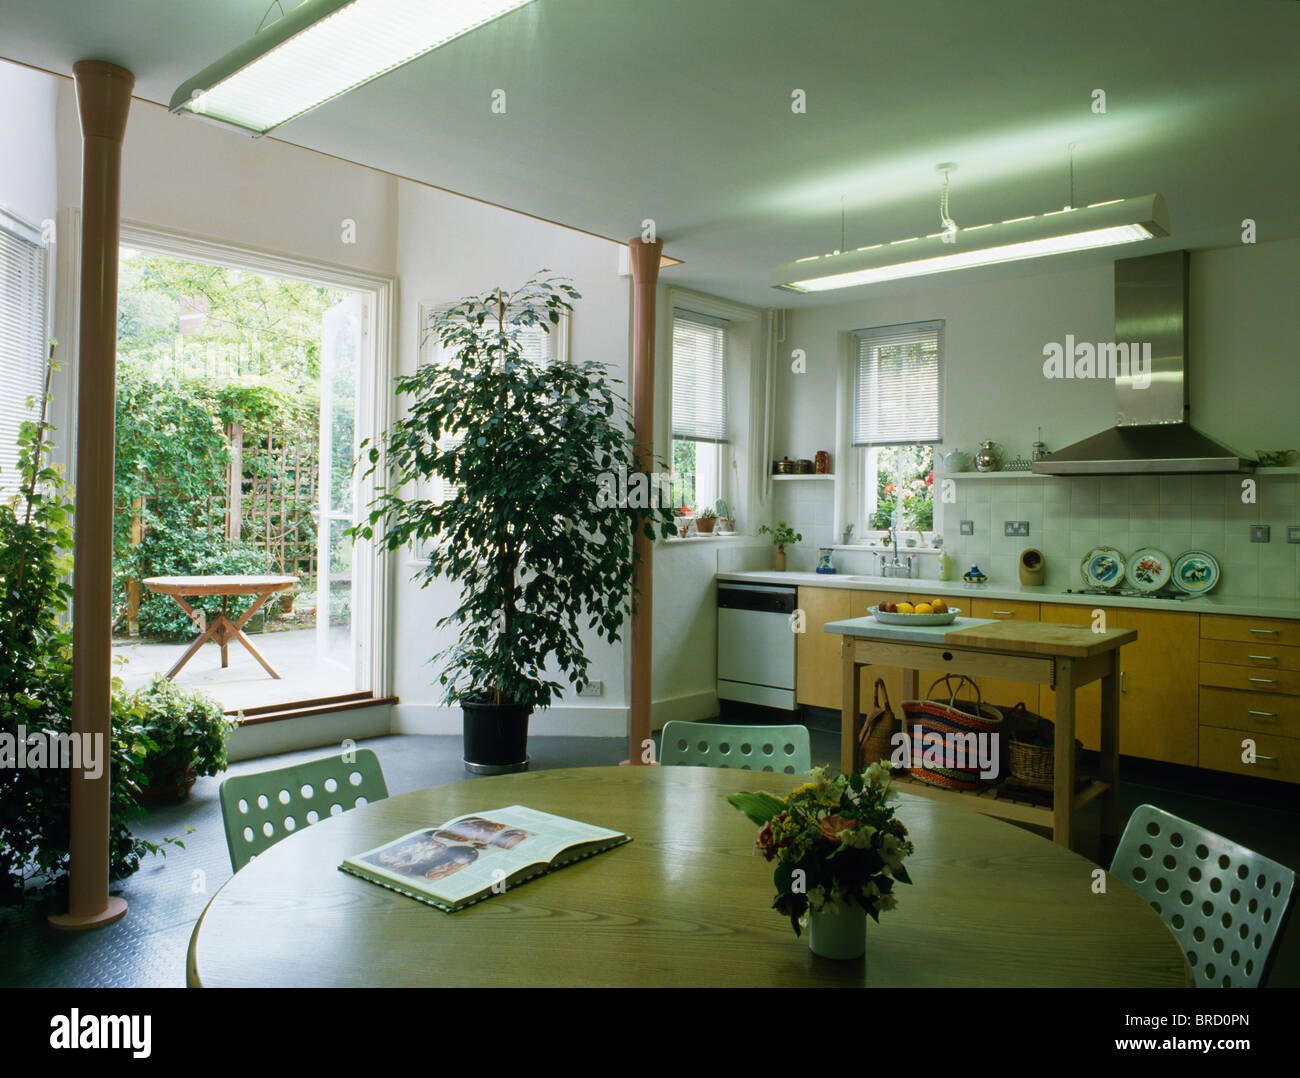 Tall Houseplant Beside Open Patio Doors In Well Lit Modern Townhouse  Kitchen Dining Room With Pale Wood Table